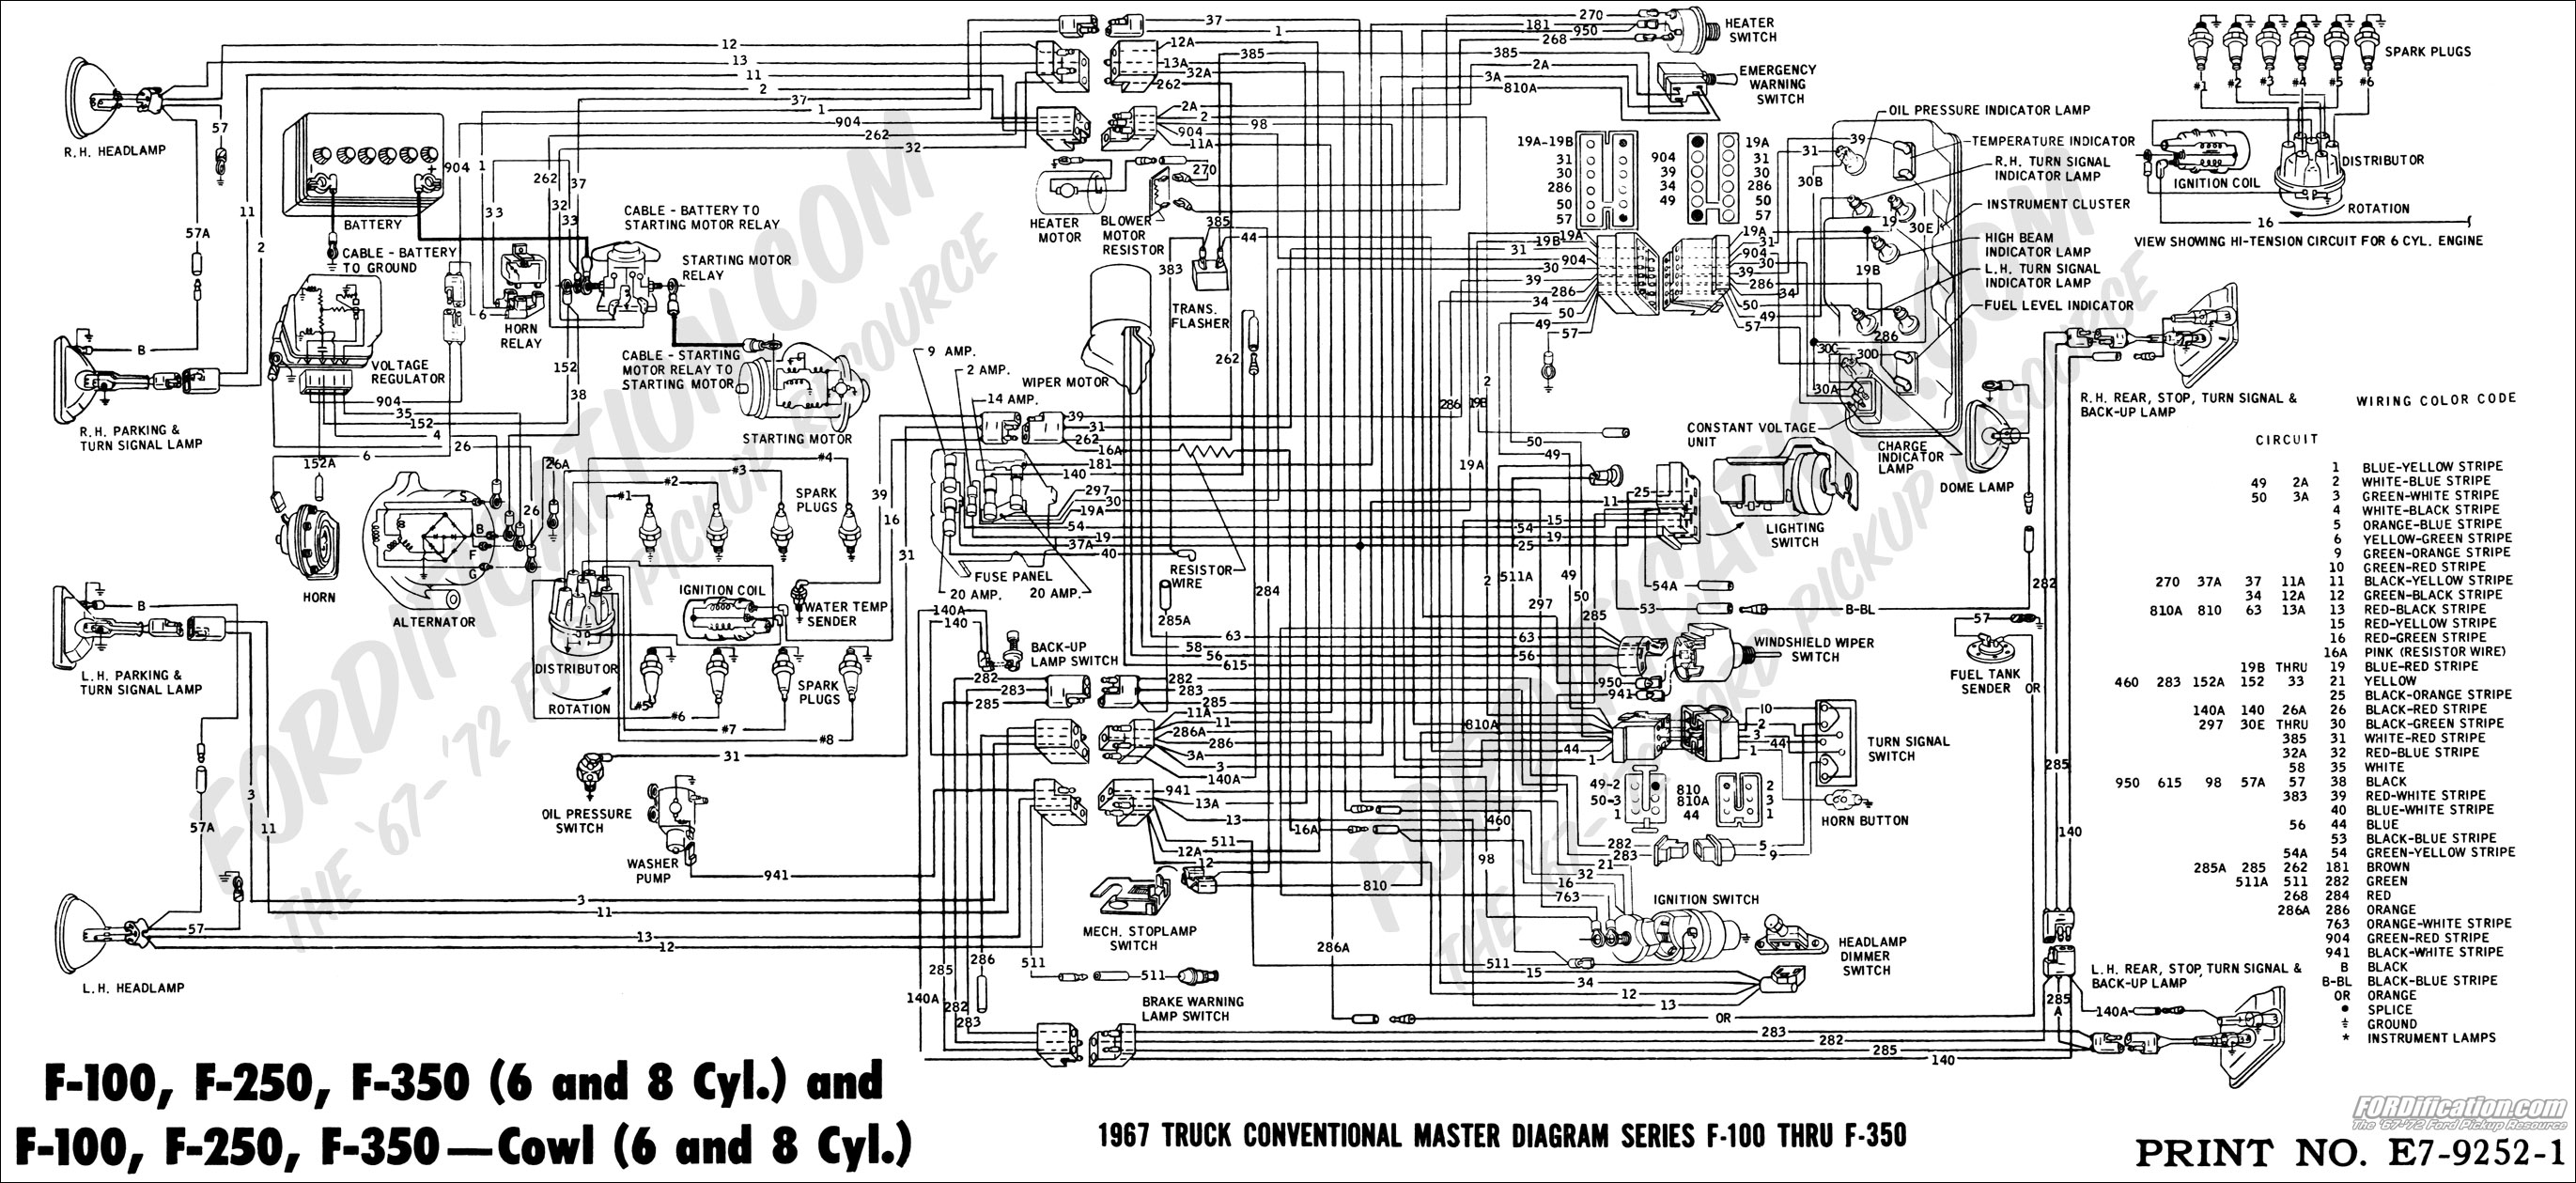 ford truck technical drawings and schematics section h wiring rh fordification com ase electrical diagrams electrical diagram template